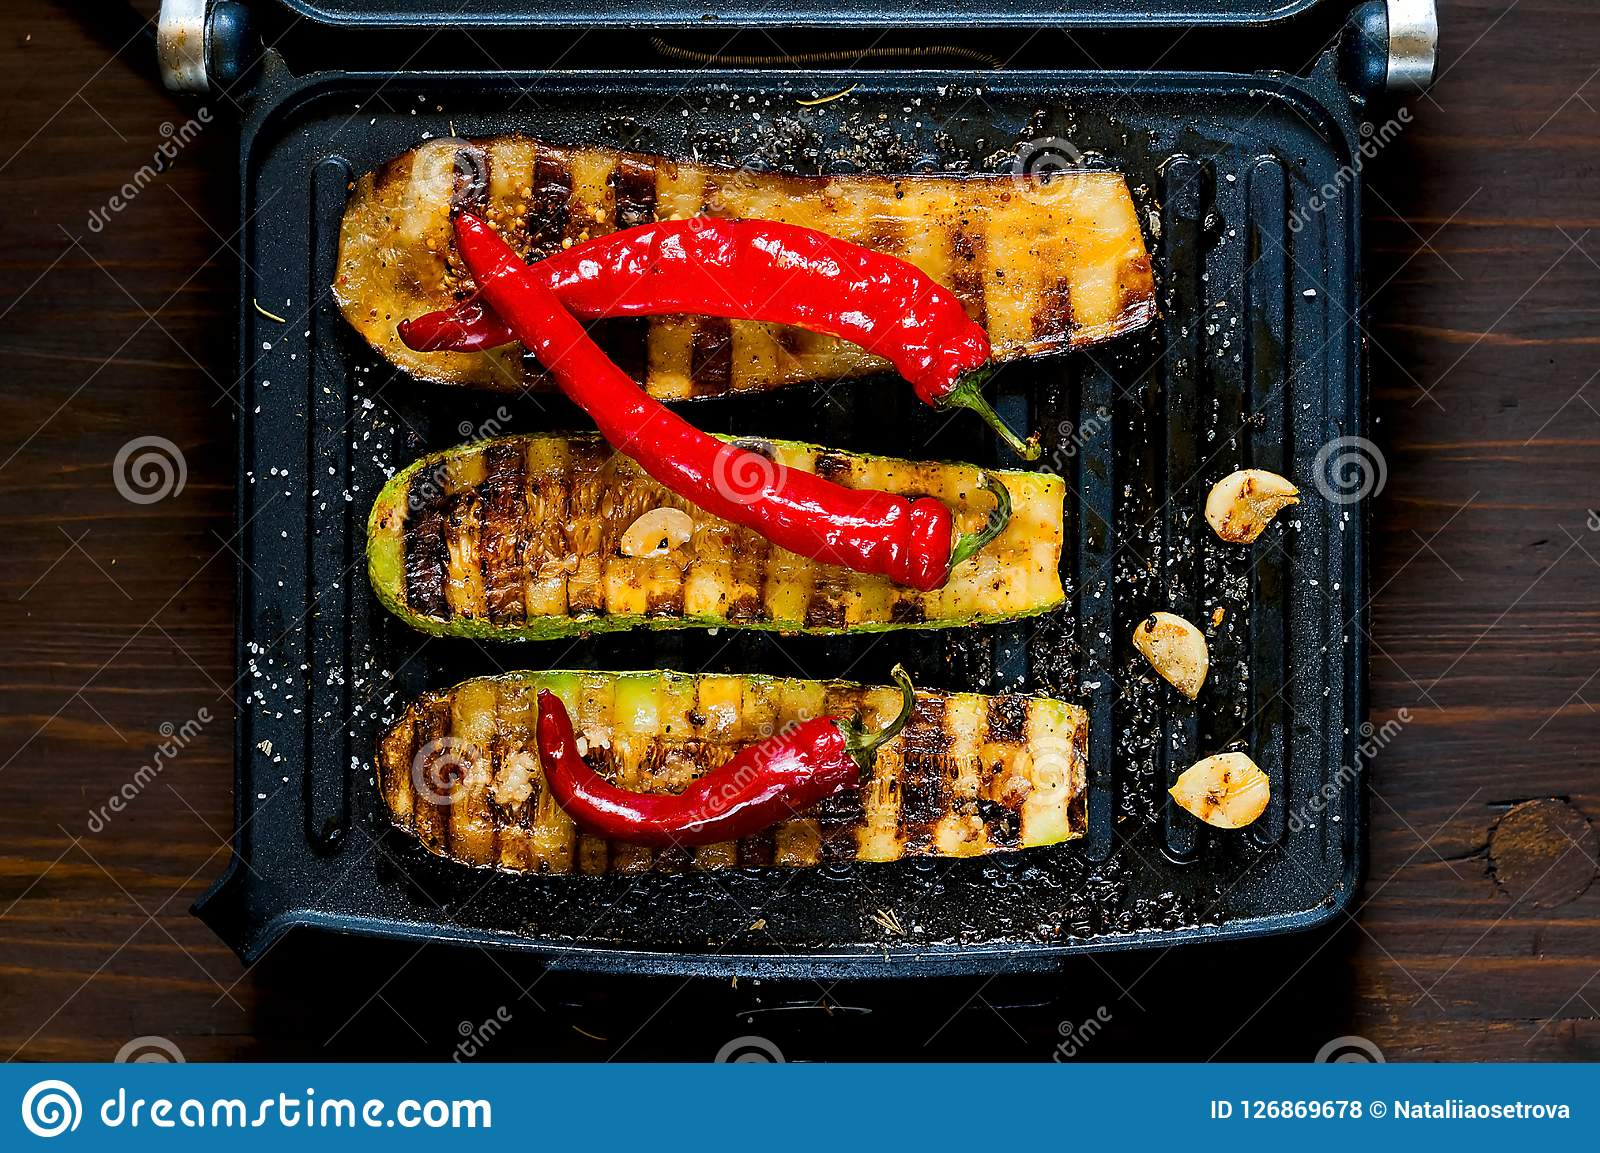 Spicy hot grilled zucchini and eggplant, cooked on an electric grill. Banner. The concept of healthy eating and delicious food.